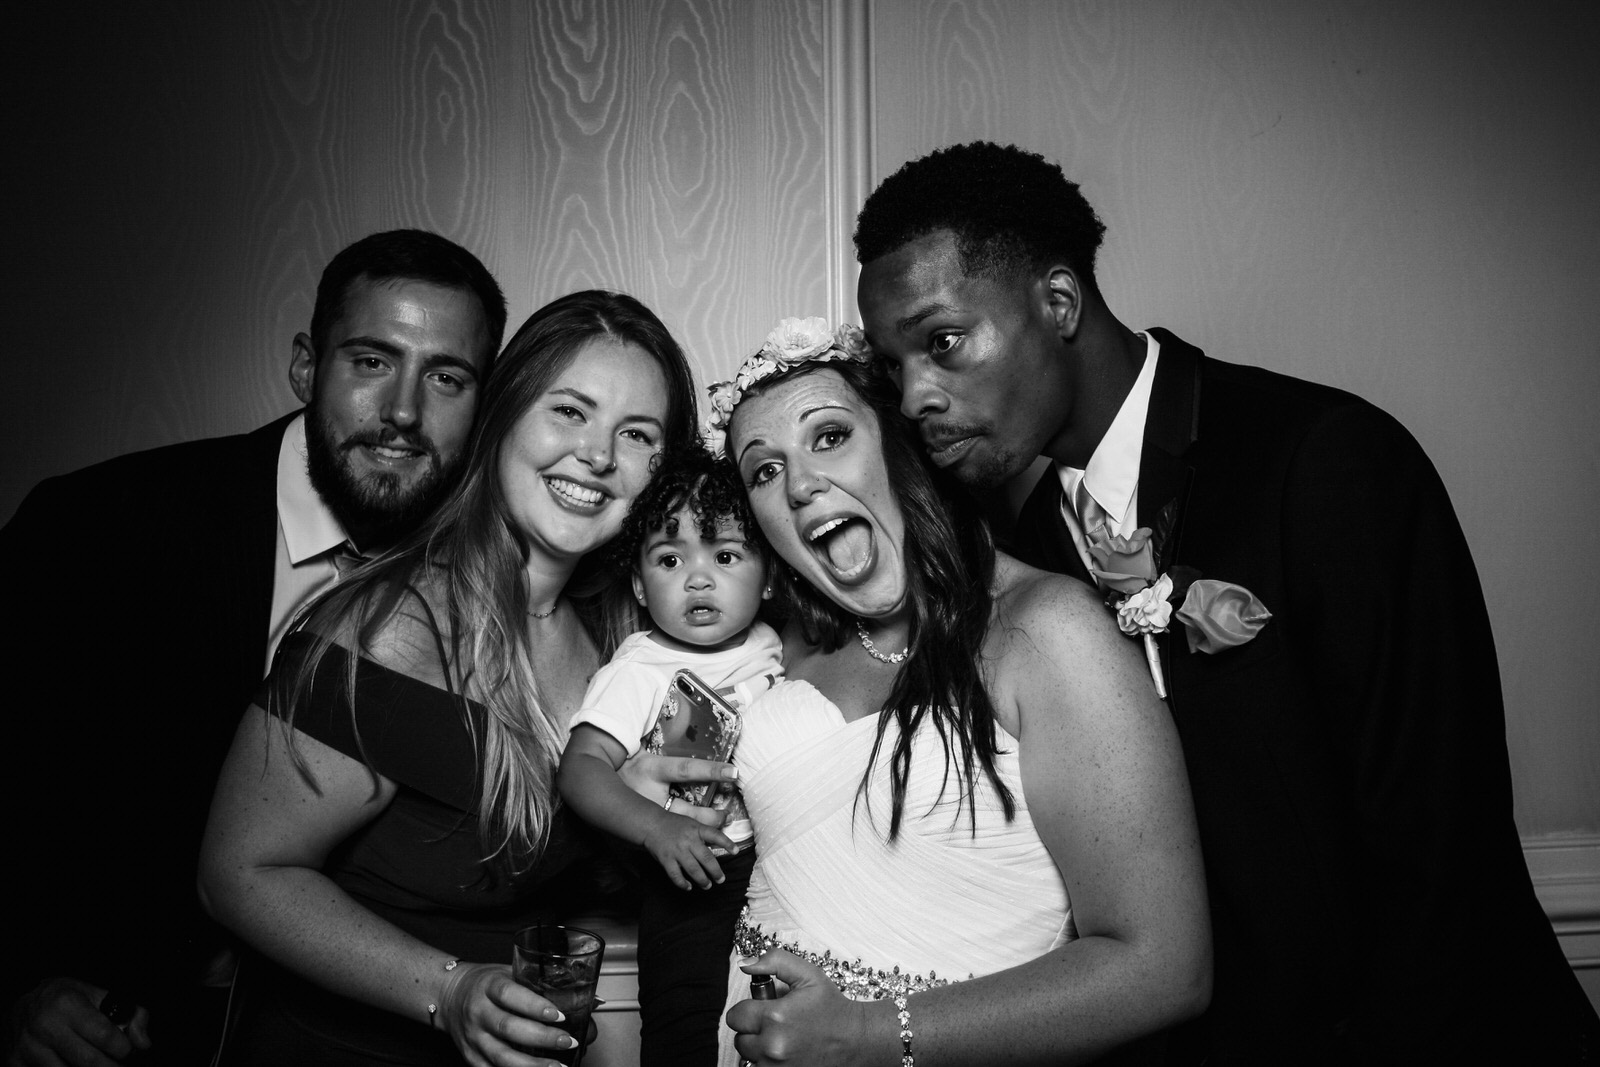 Ashley-Tyrone-Wedding-Photo-Booth-Presidential_Norristown-Wedding-25.jpg